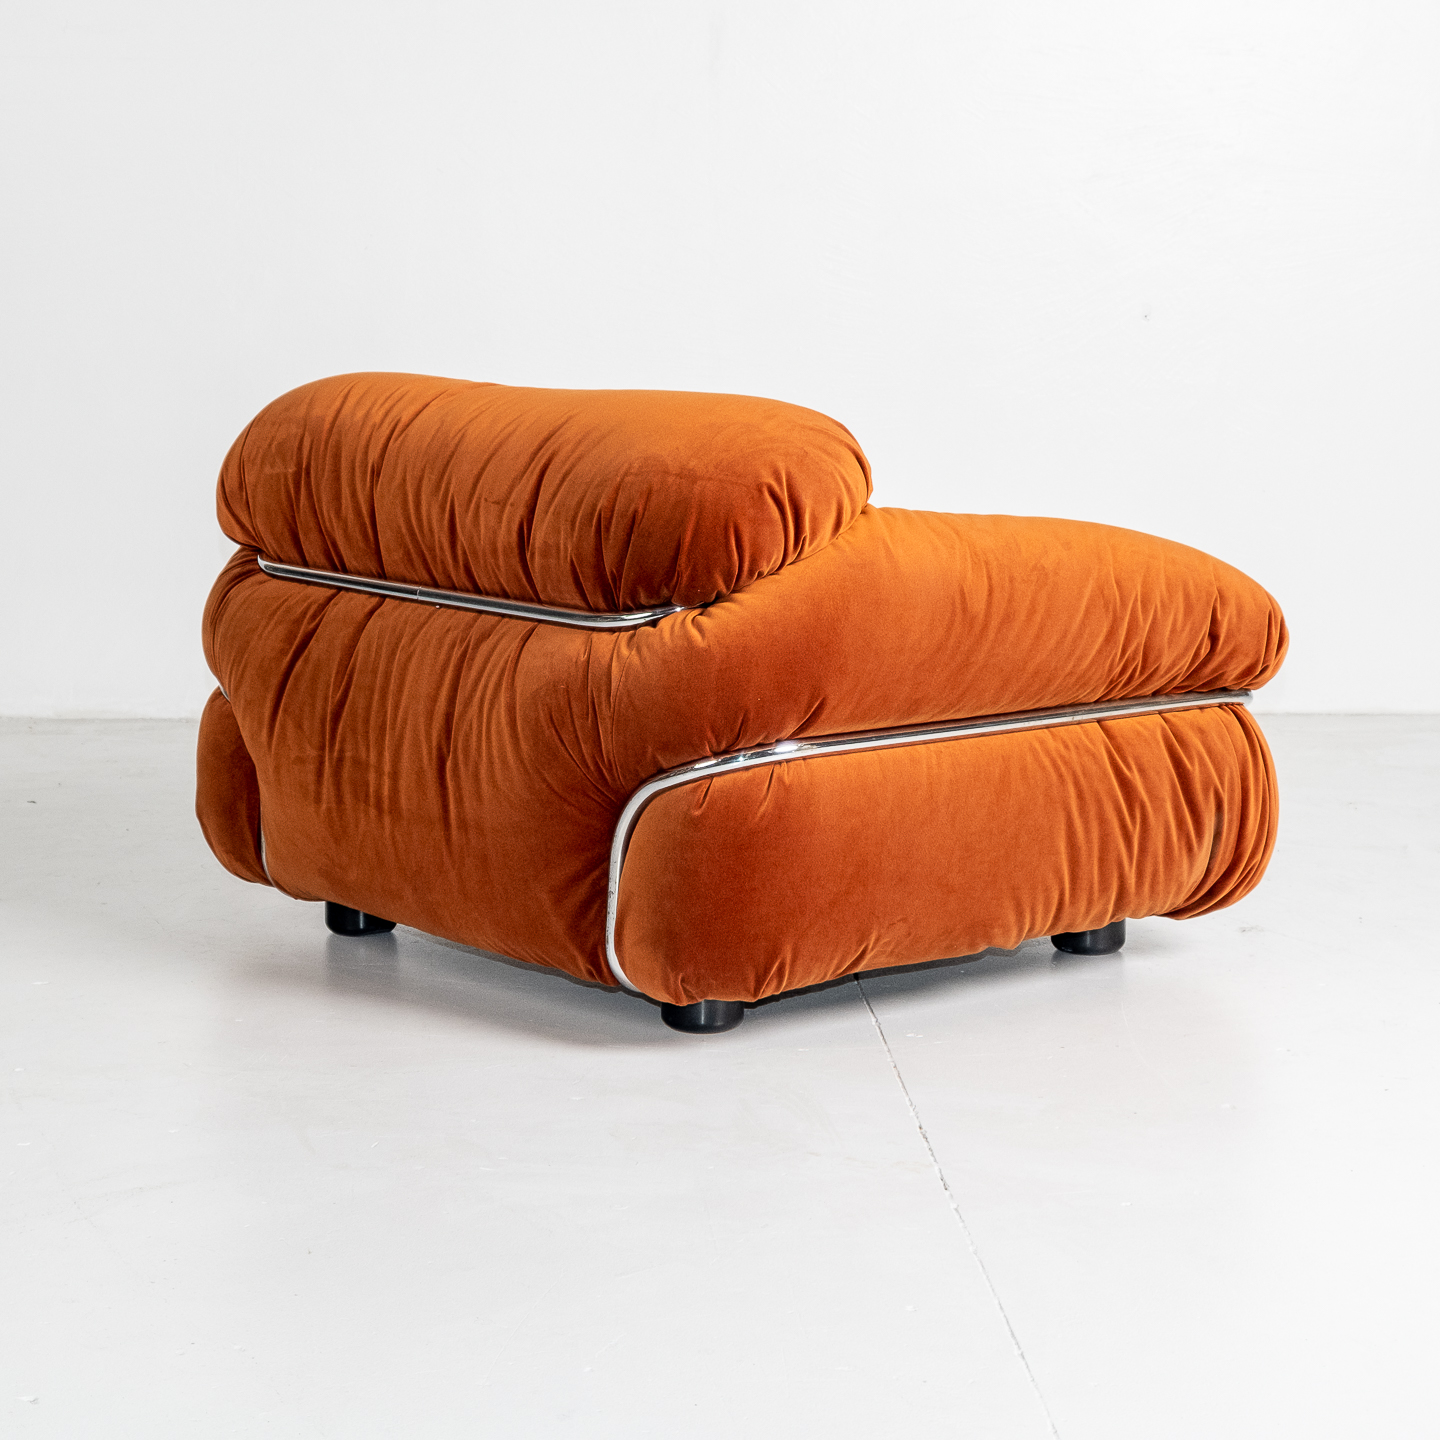 Model 595 Sesann Armchair By Gianfranco Frattini For Cassina, 1970s, Italy 17